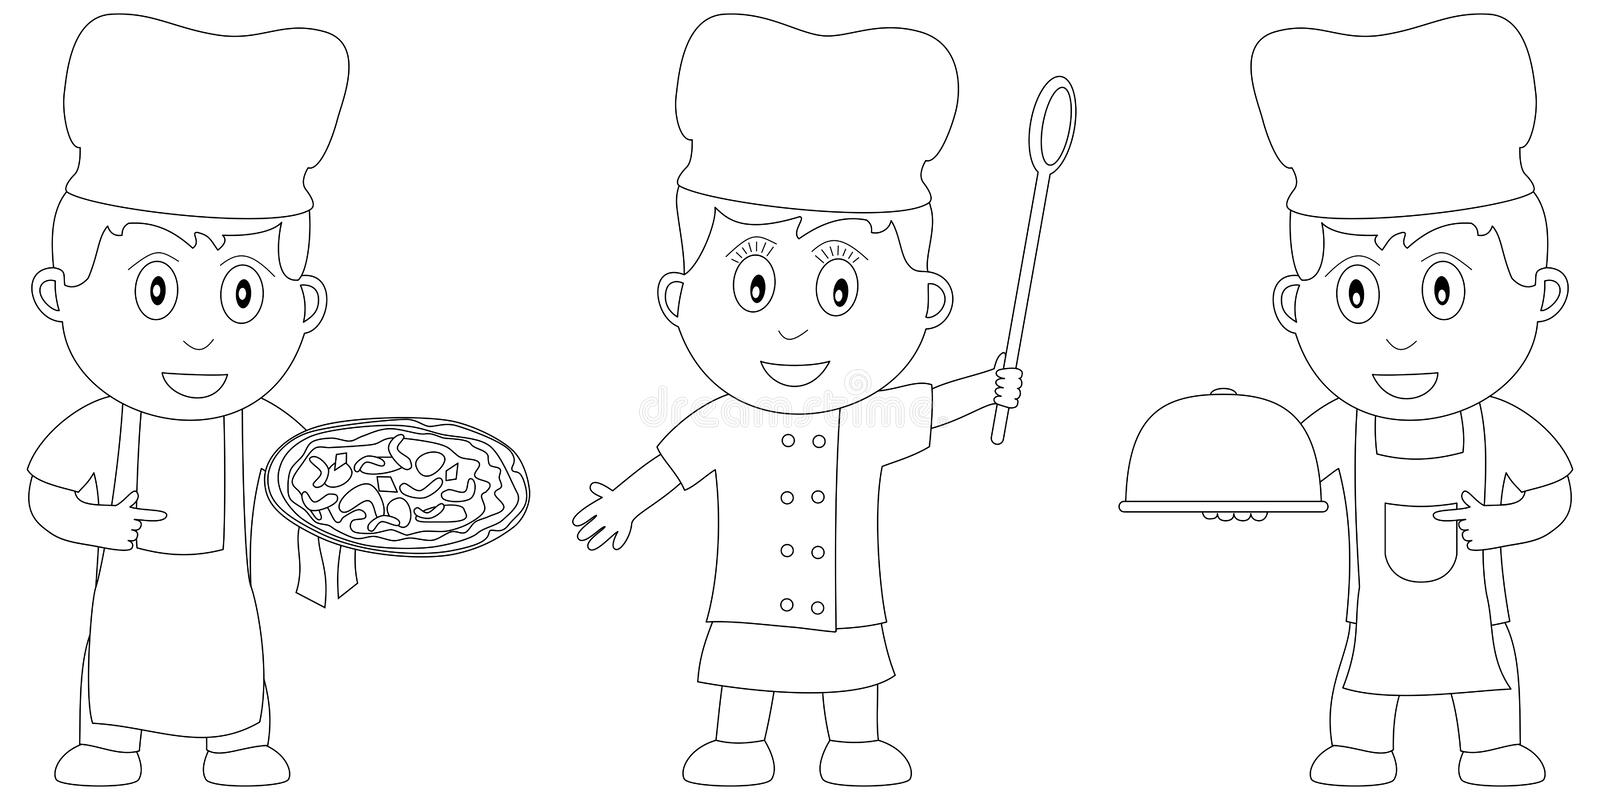 Coloring Book for Kids [17]. Three kids (a pizza chef and two chefs) in black and white. Useful also for colouring book for kids. You can find other b/w